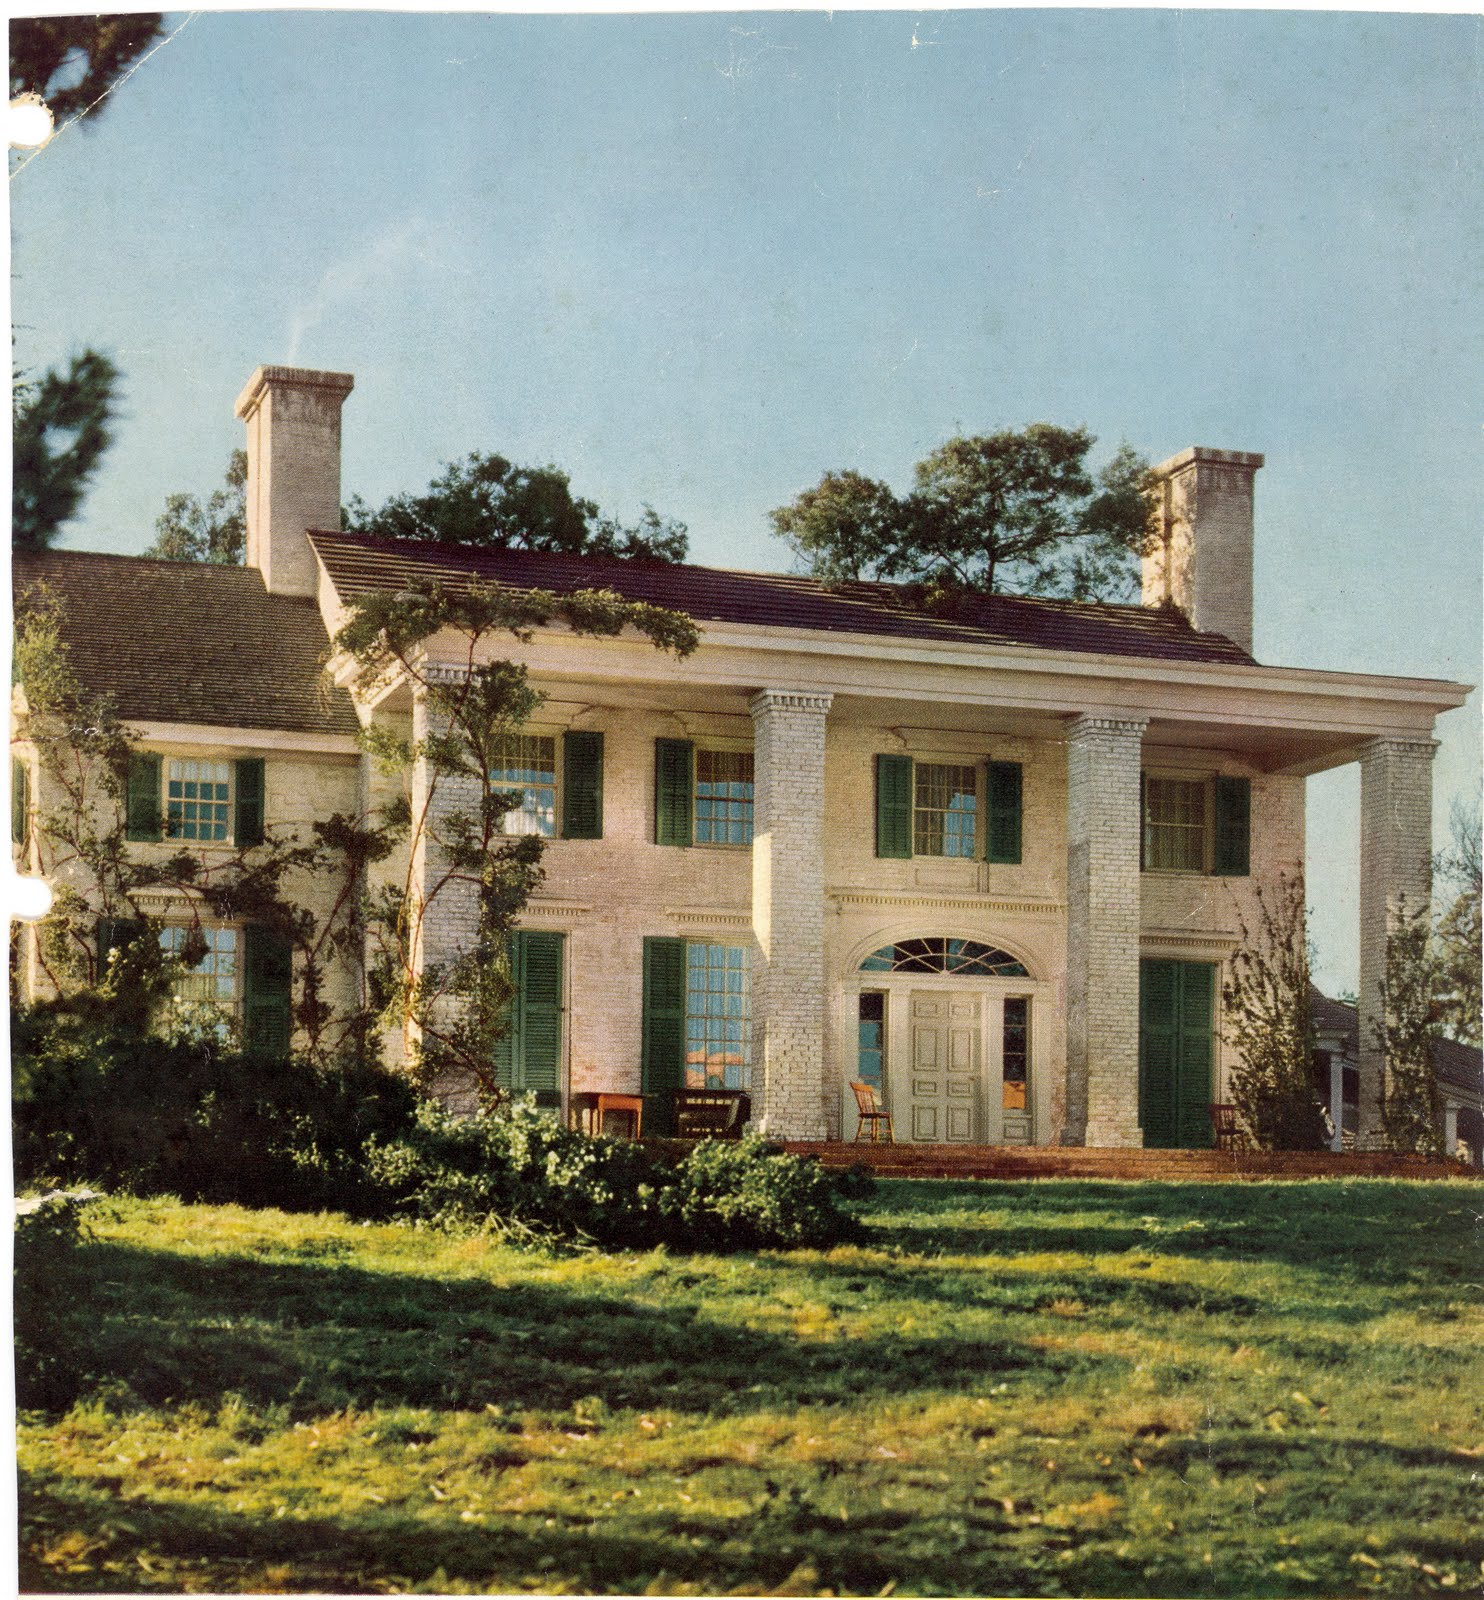 Hollywoods Iconic Gone with the Wind Movie Set has been hiding